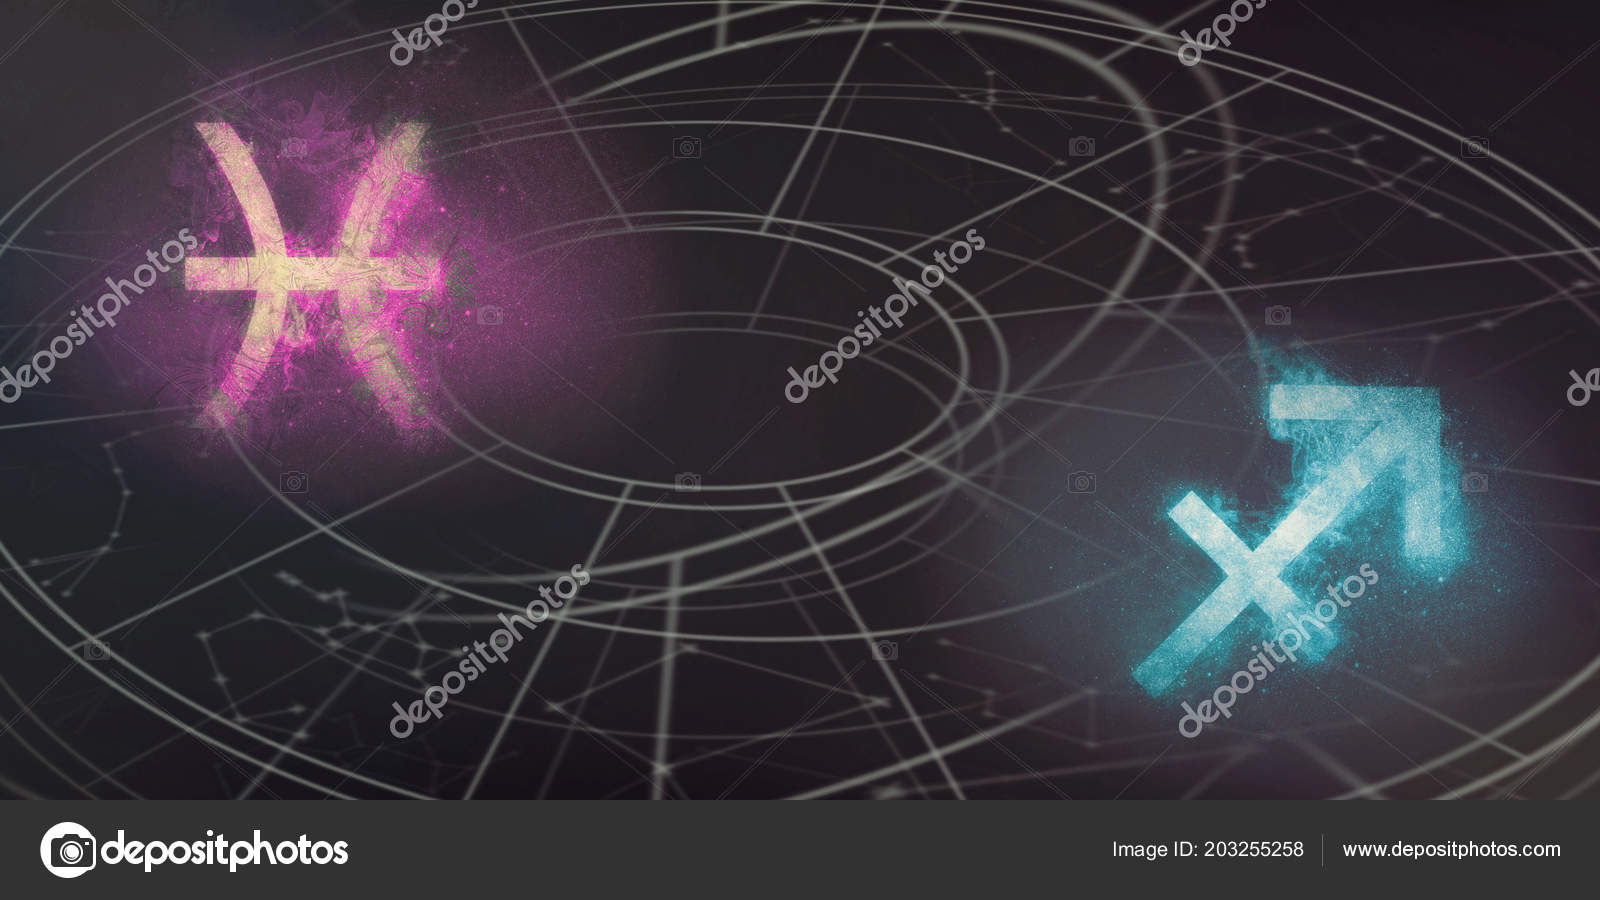 Pisces Sagittarius Horoscope Signs Compatibility Night Sky Abstract